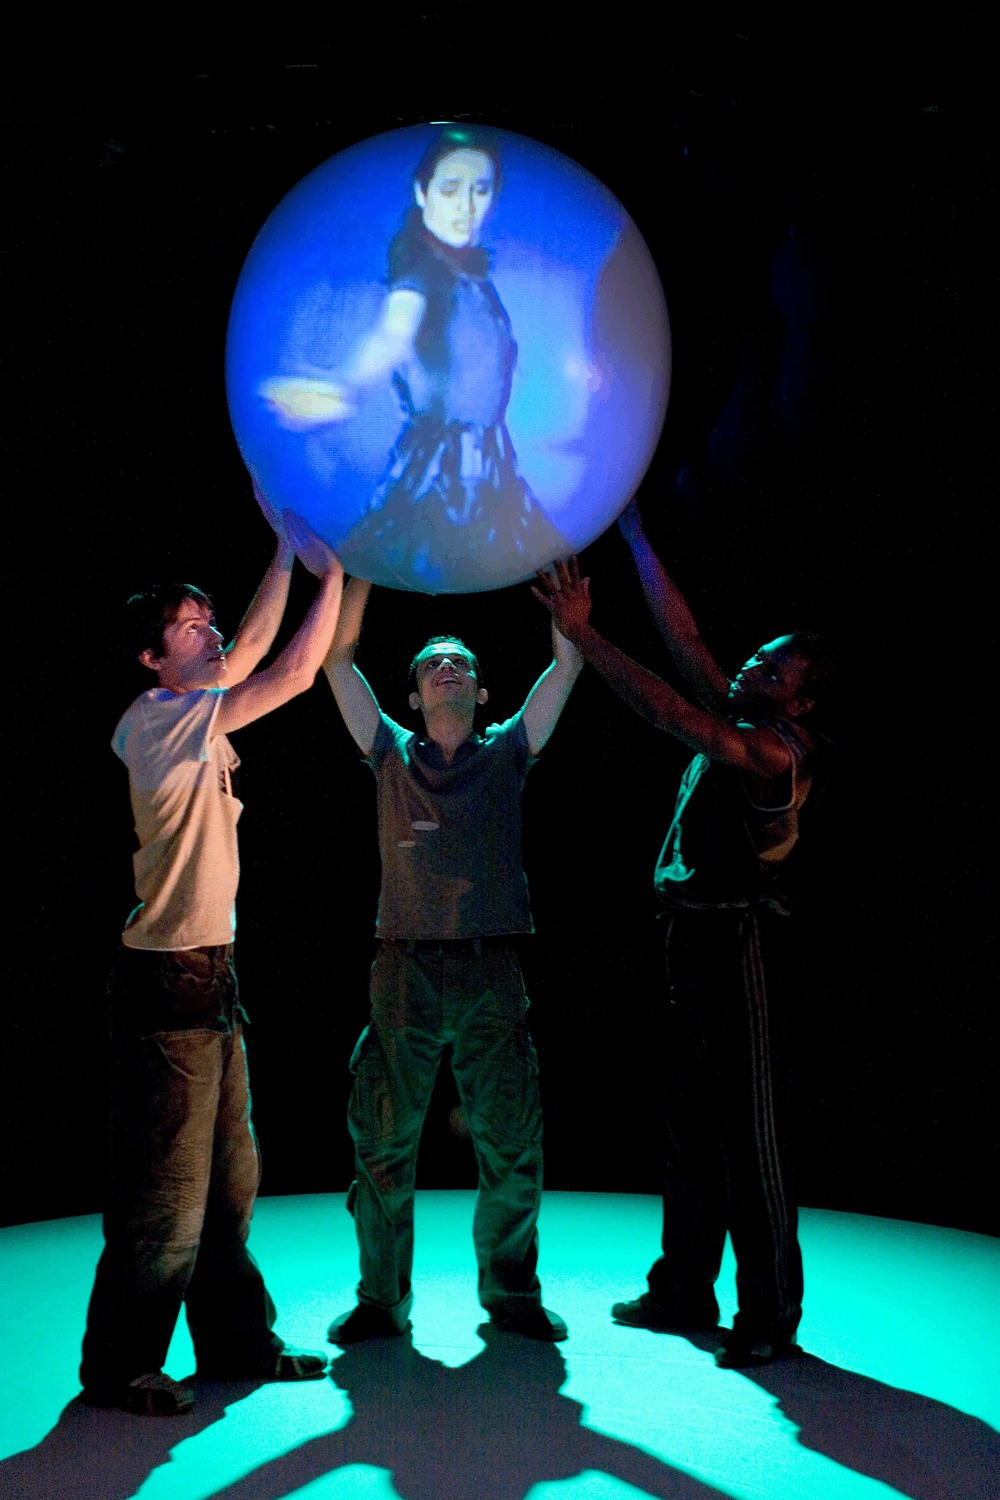 Three men standing on a glowing green circle hold a ball high in the air and inside a woman dances